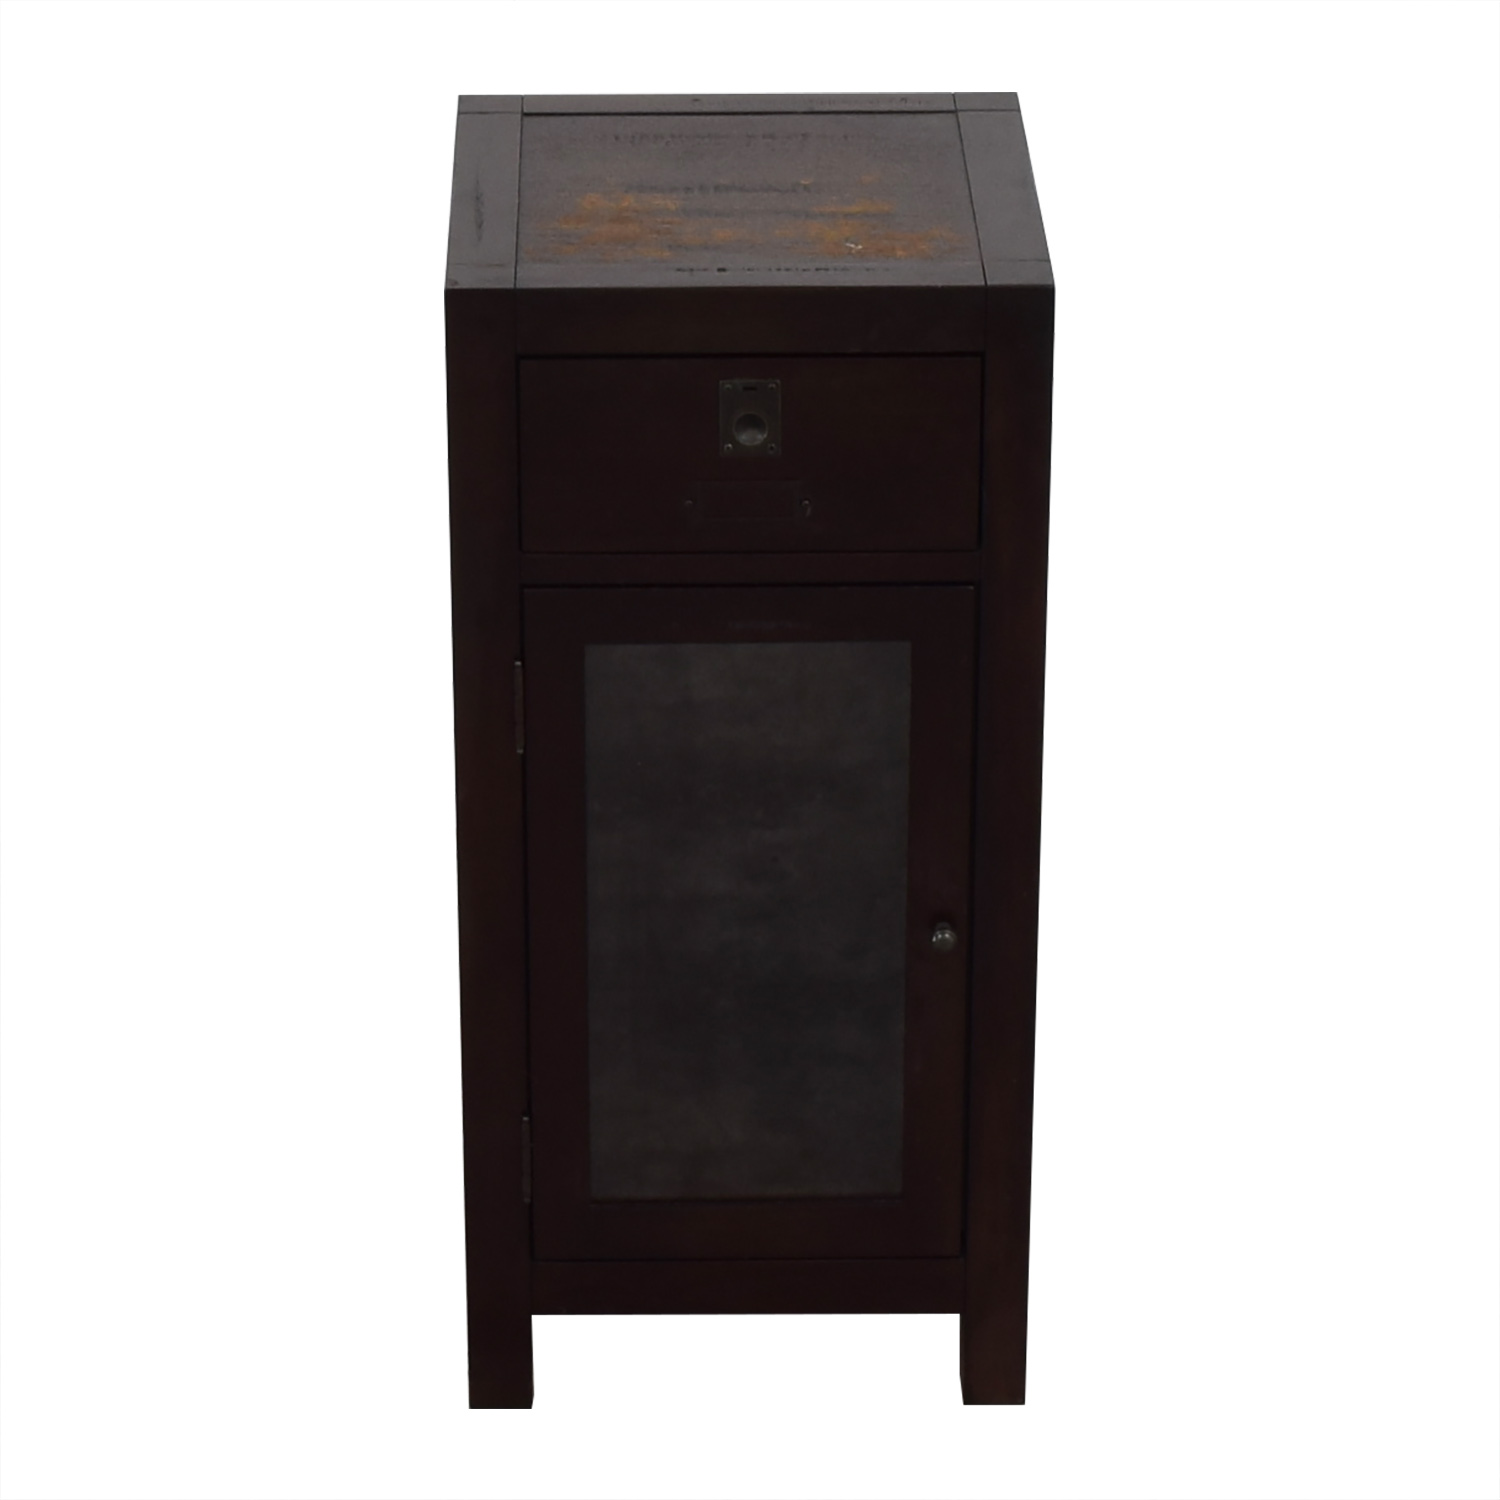 Pottery Barn Pottery Barn Brown End Table with Cabinet dimensions